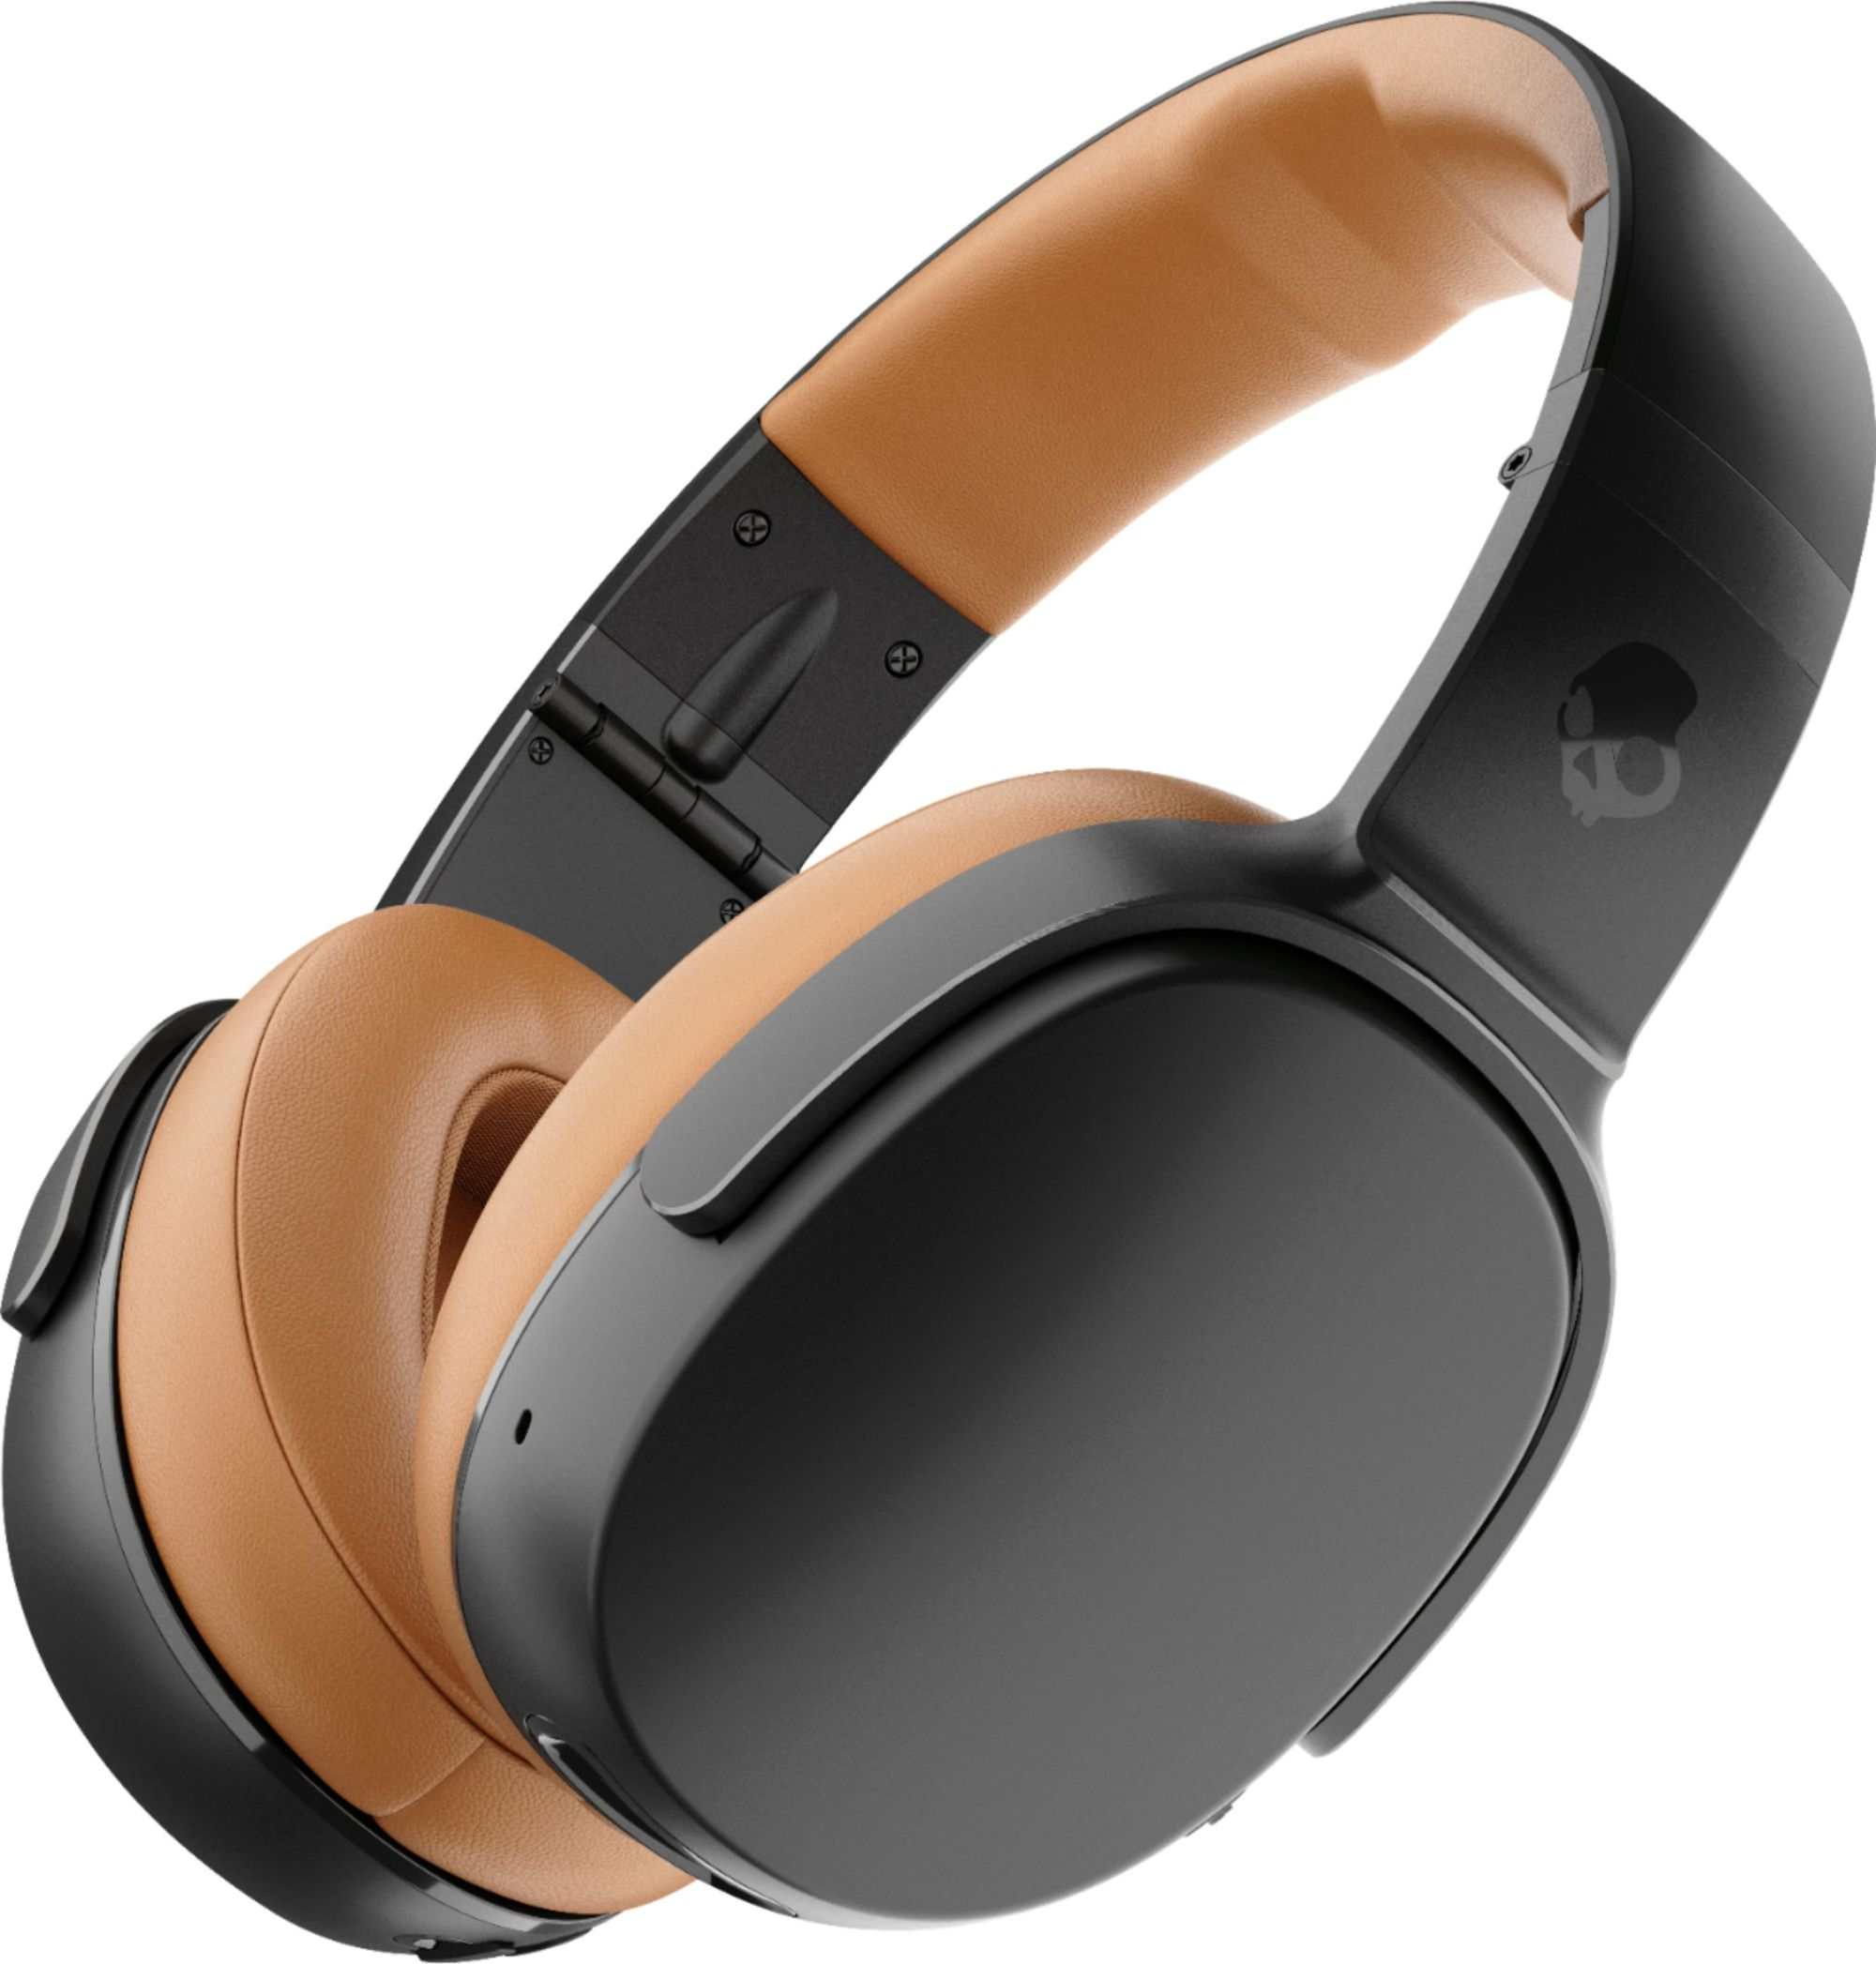 hight resolution of best buy skullcandy crusher 360 wireless over the ear headphones black tan s6mbw j373